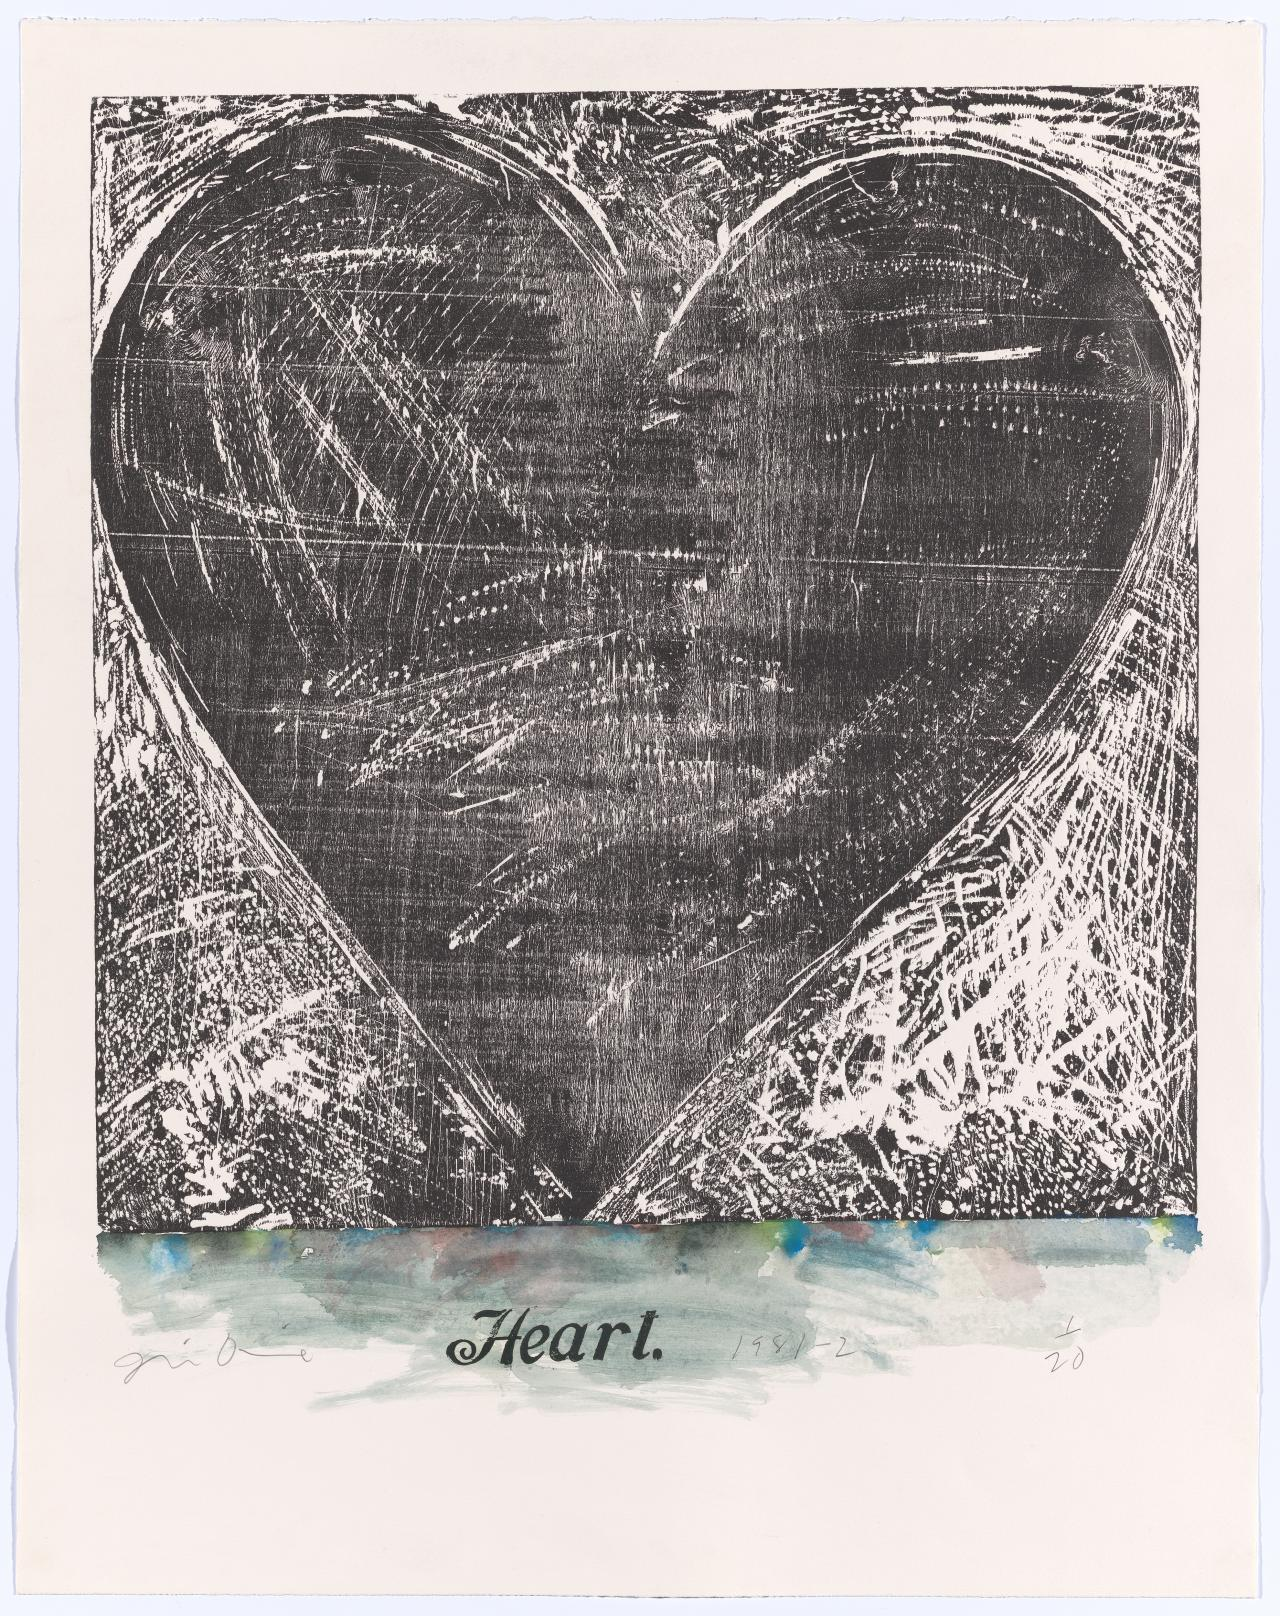 The Jerusalem woodcut heart